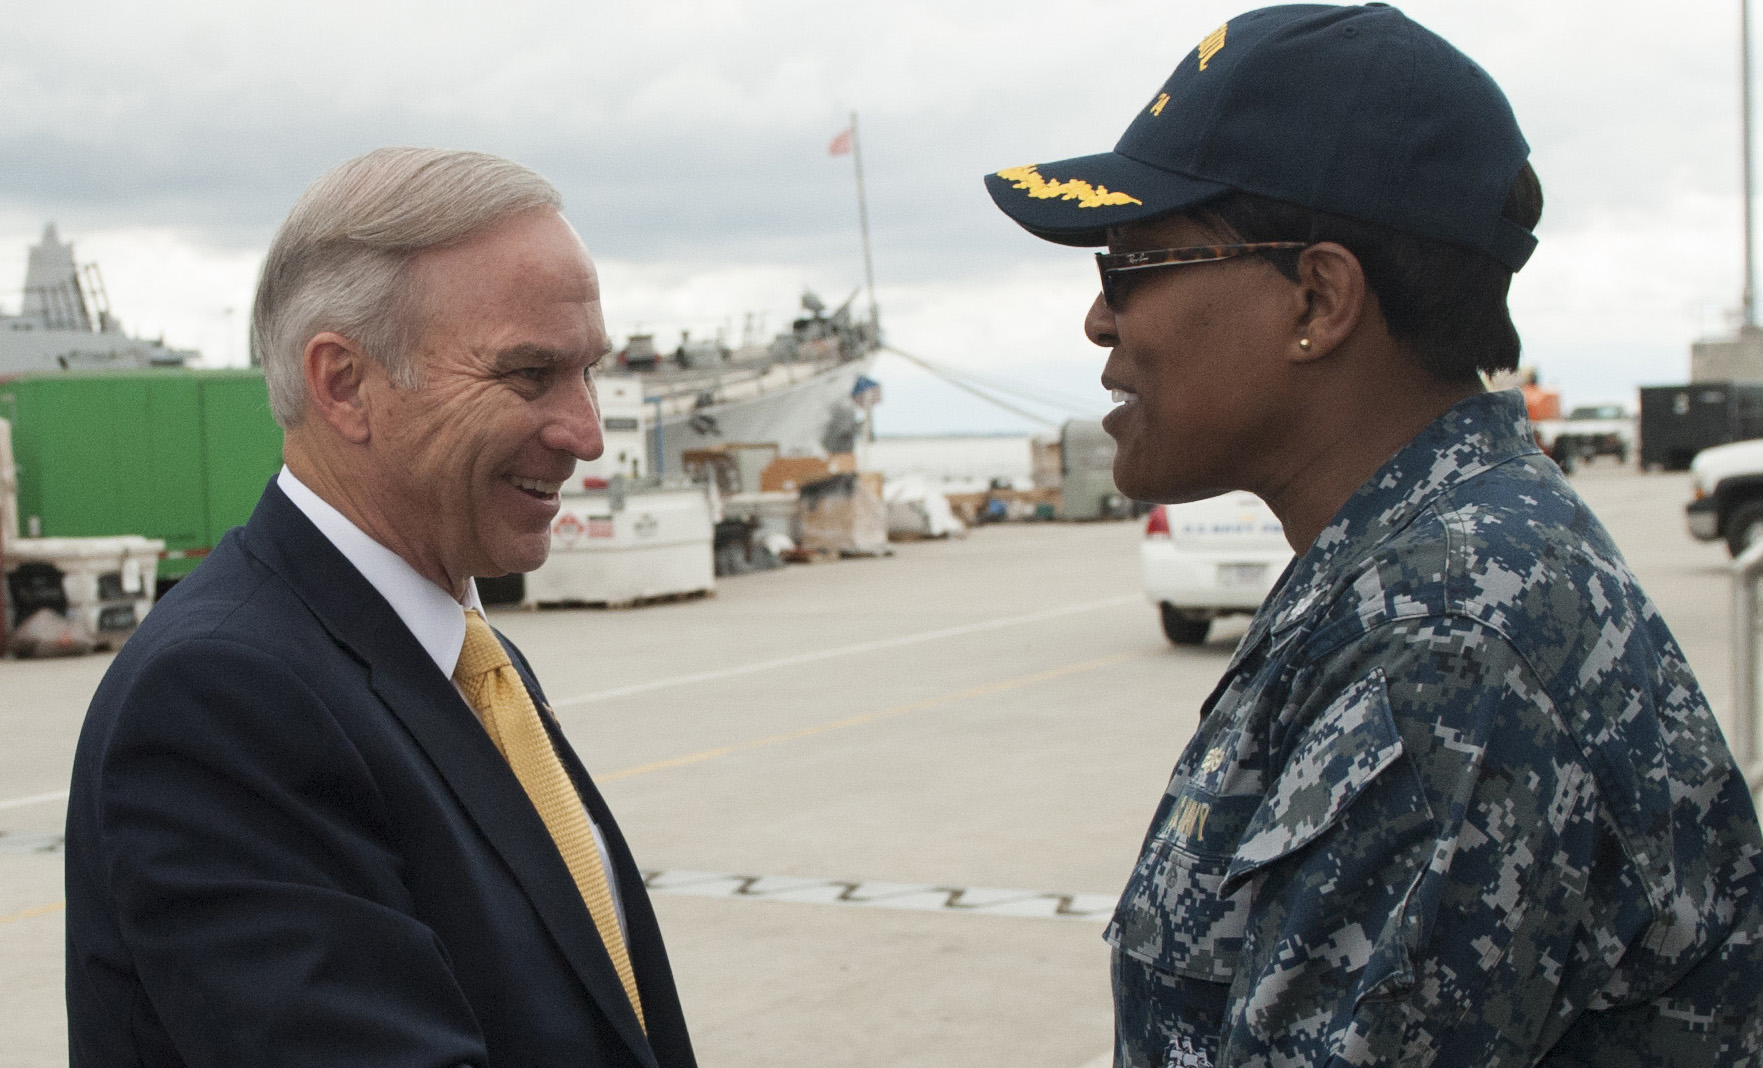 Cmdr. Janet H. Days, USS McFaul (DDG-74) Executive Officer, greets Chairman Randy Forbes of the House Armed Services' Seapower and Projection Forces Subcommittee prior to a tour aboard Mcfaul on May 23, 2016. US Navy Photo